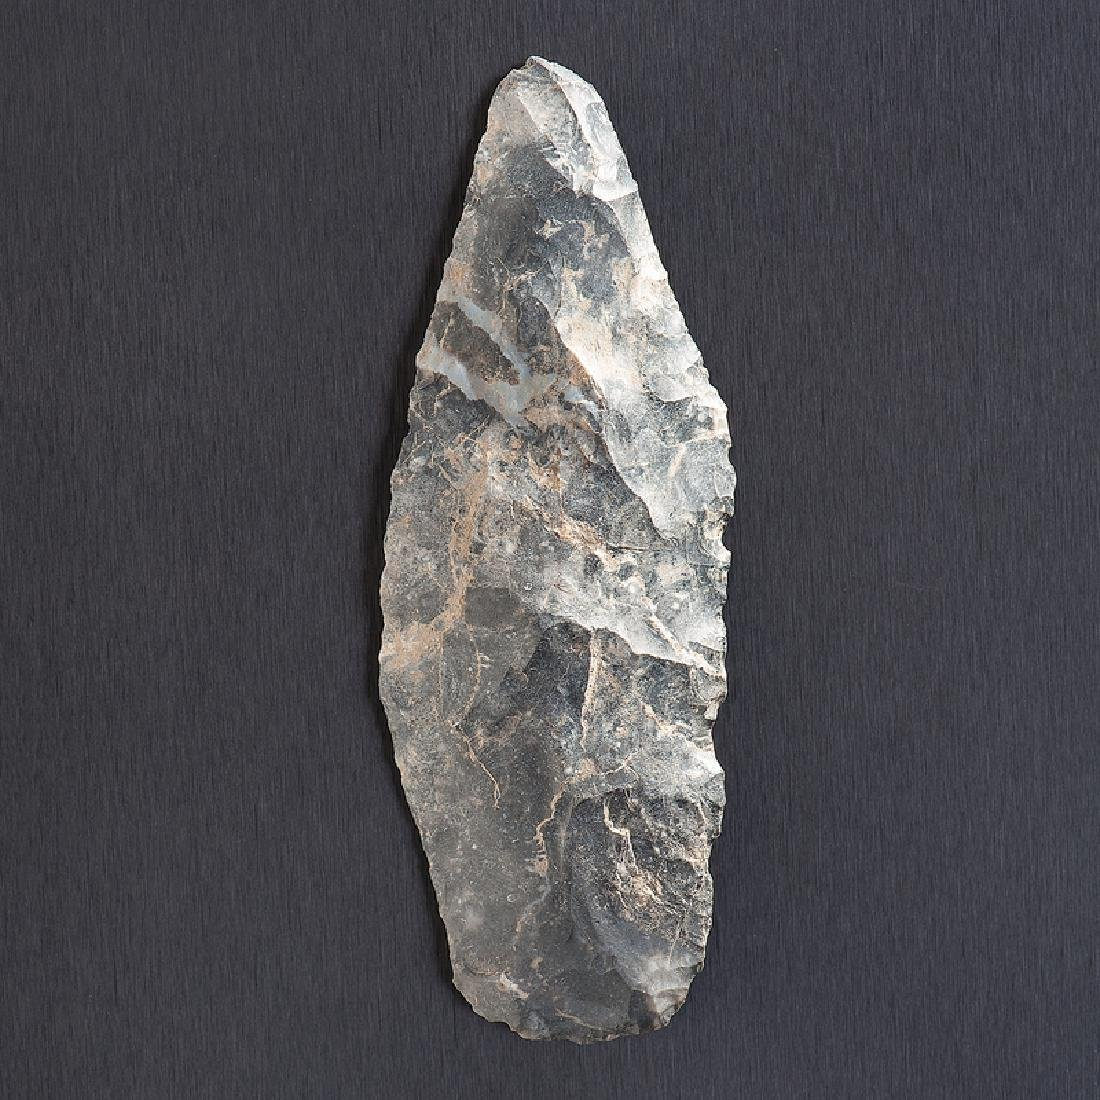 A Coshocton Flint Lanceolate, From the Collection of